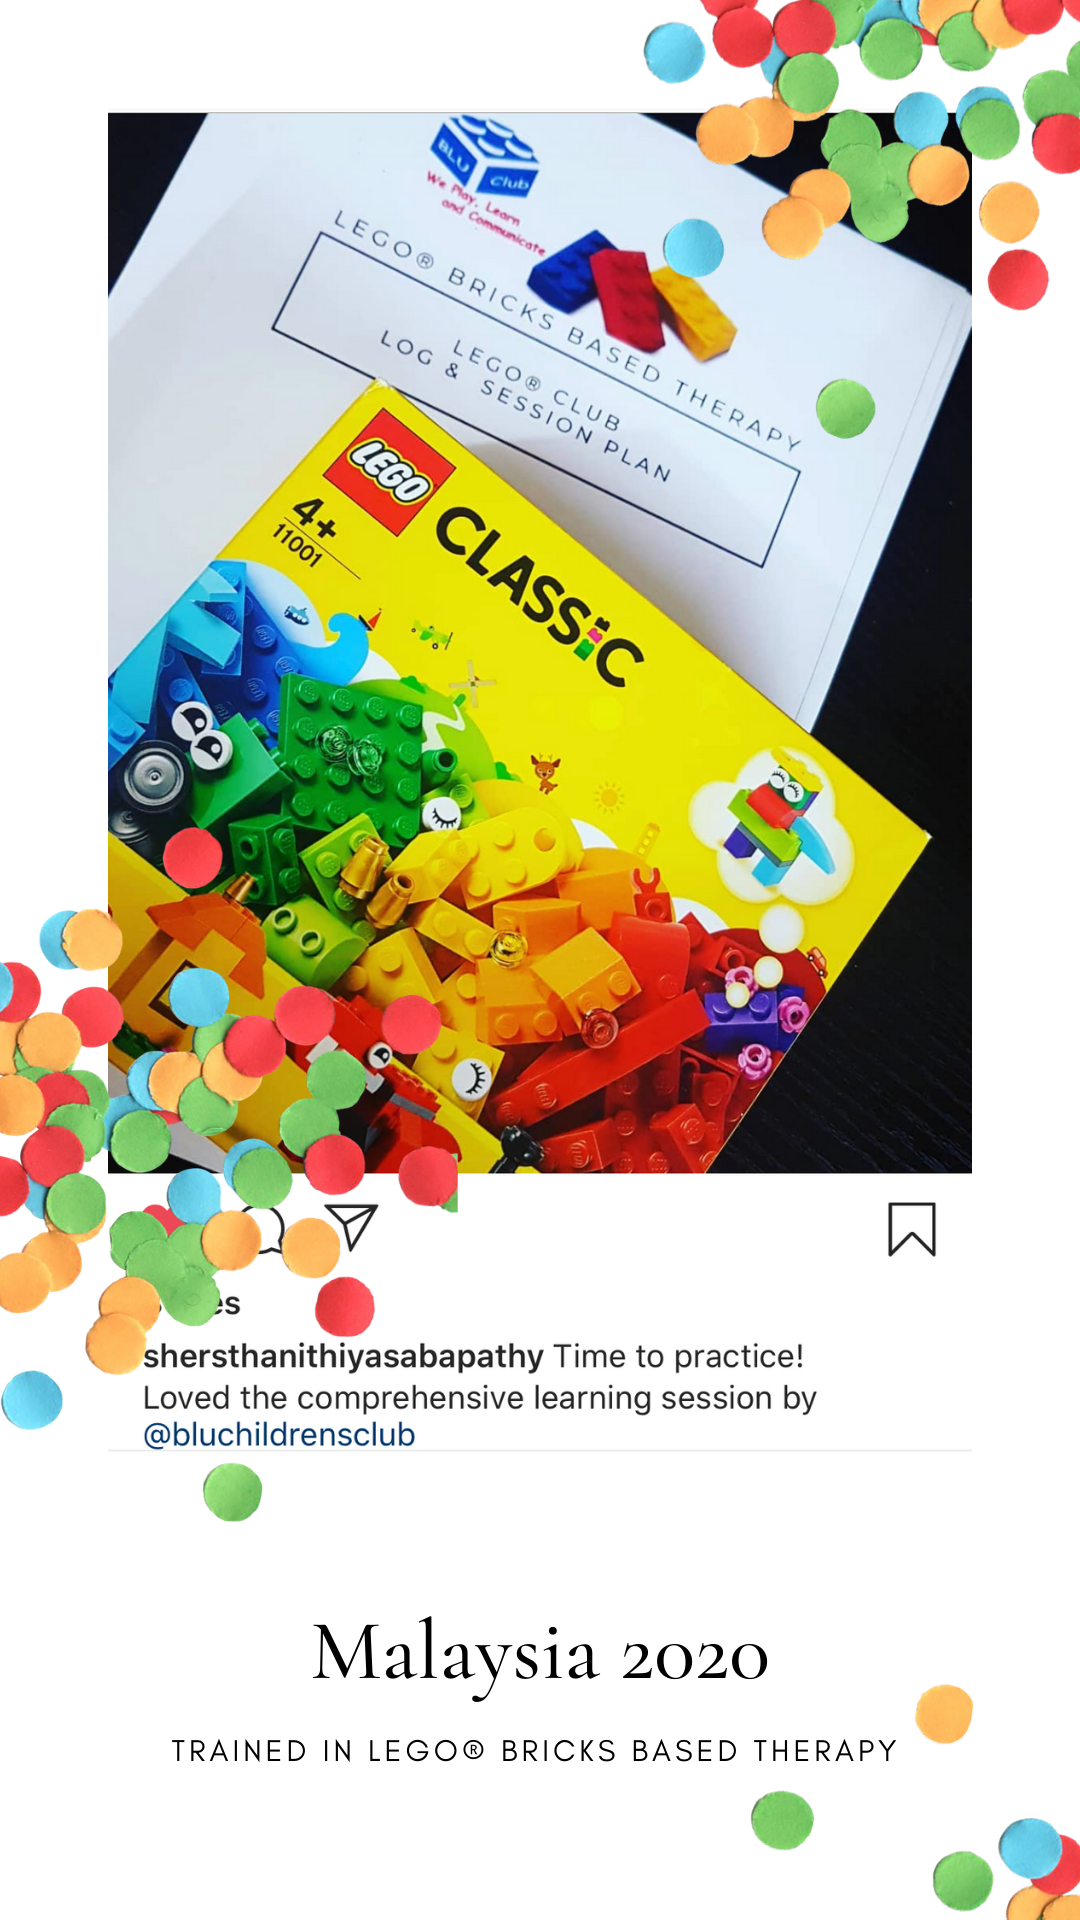 Lego Bricks Based Therapy Training